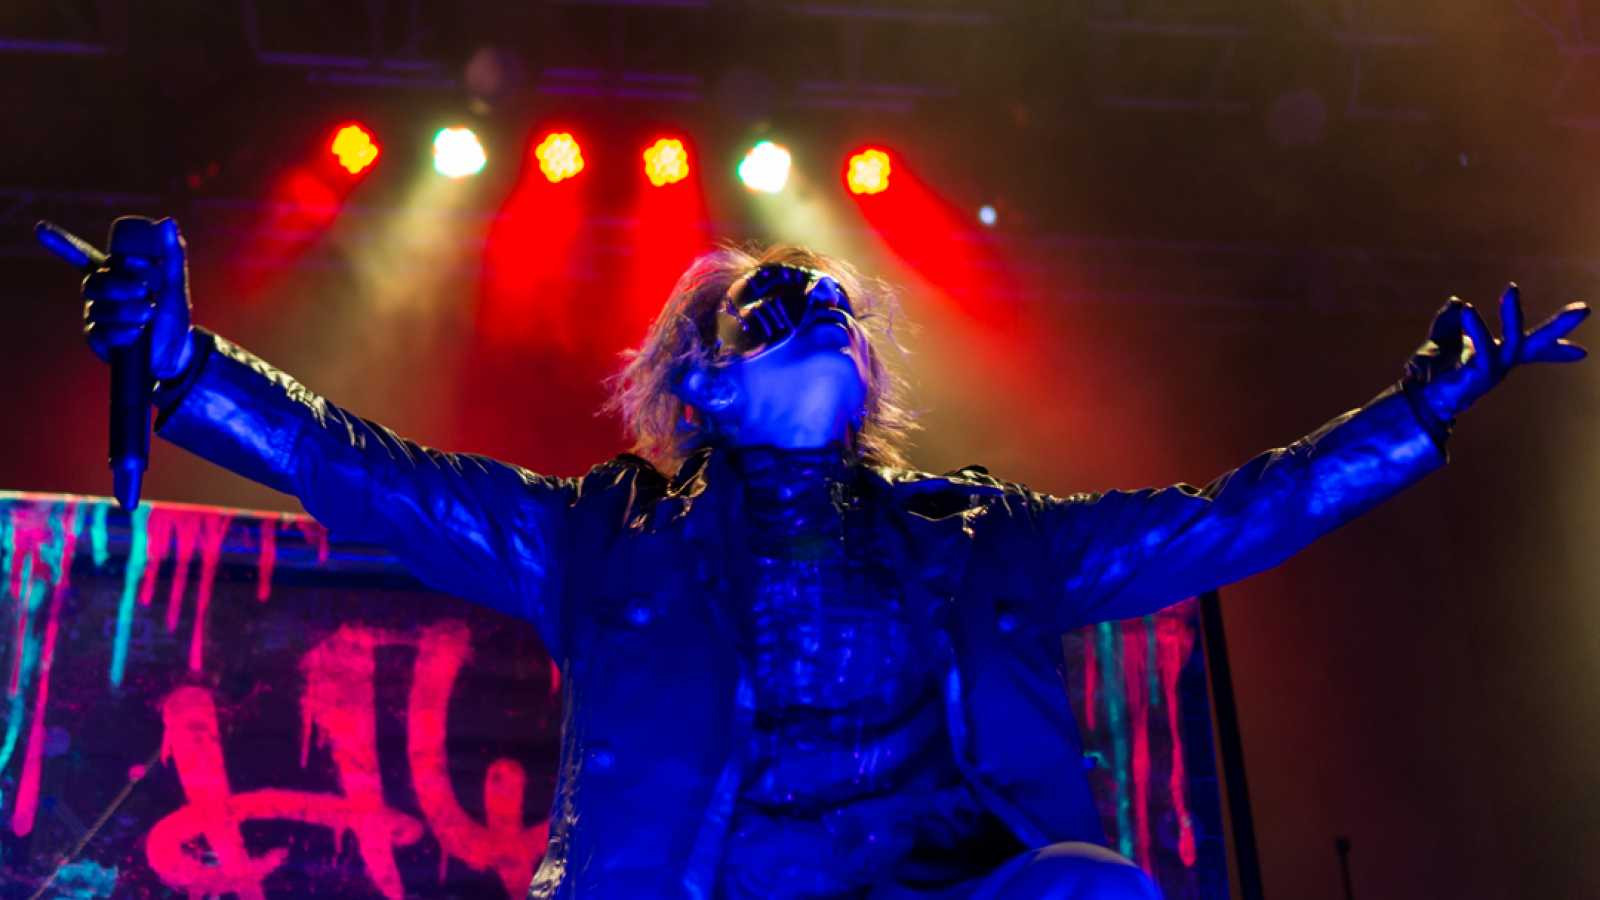 HYDE at The Fillmore, Silver Spring